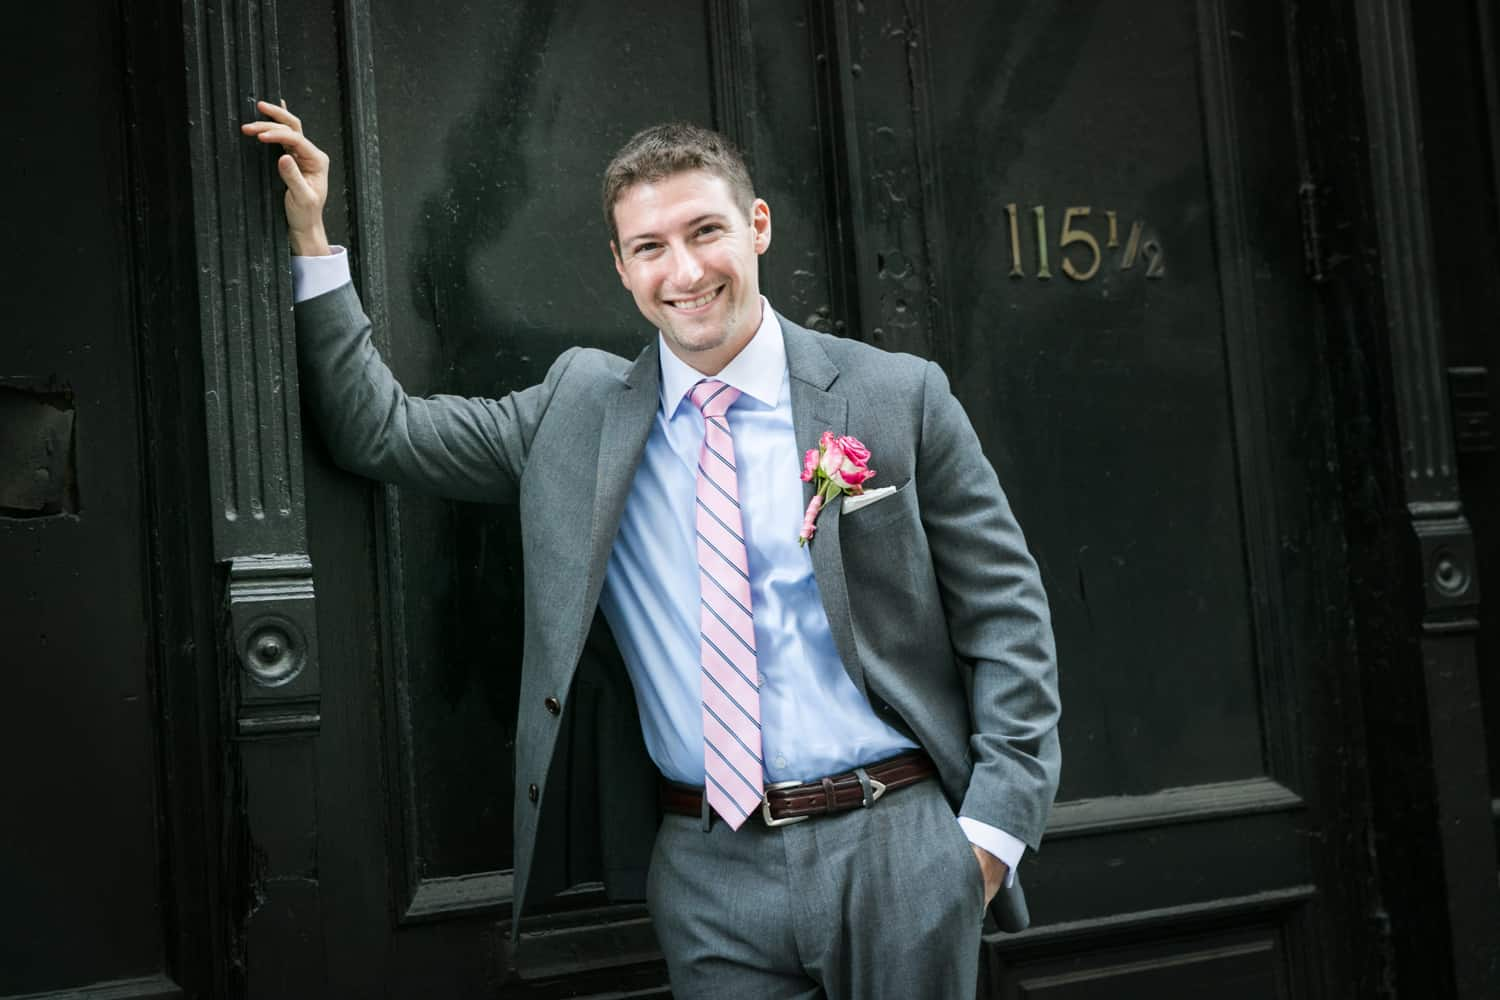 Groom leaning against wall in SoHo